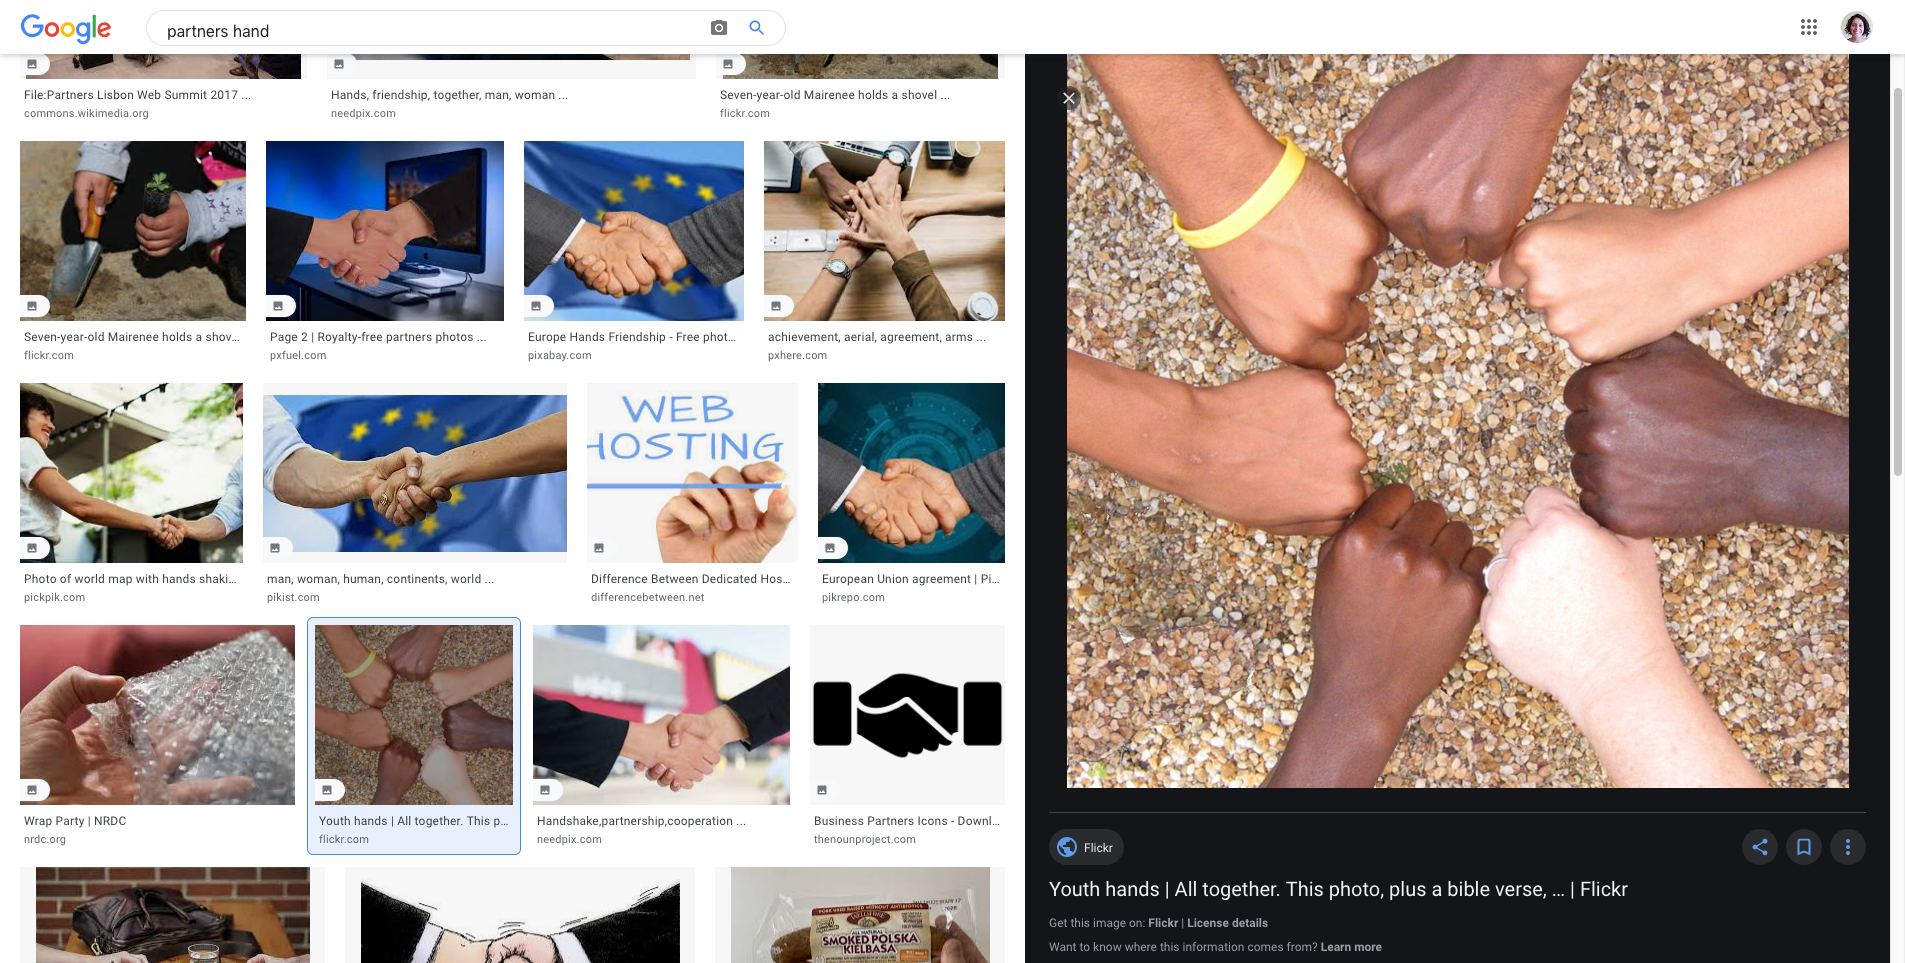 google images search results page with an image of a ring of 7 fists selected